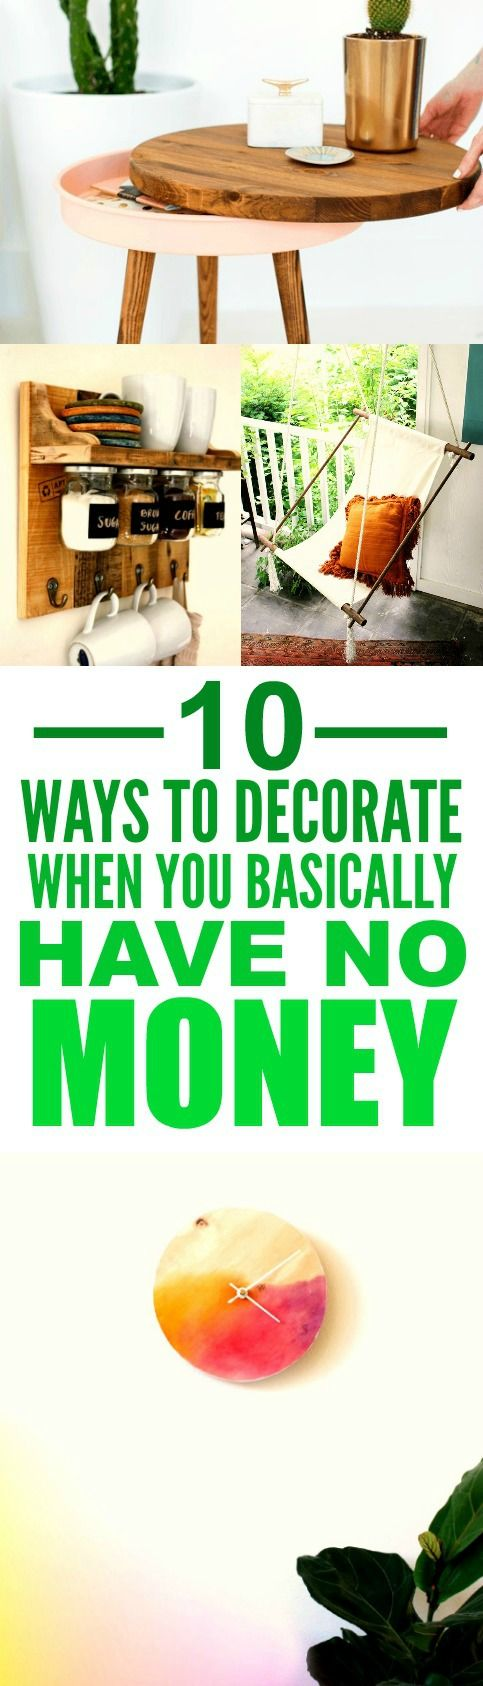 Best 25  Budget home decorating ideas on Pinterest   Low budget decorating  Home  decor ideas and Home decor. Best 25  Budget home decorating ideas on Pinterest   Low budget